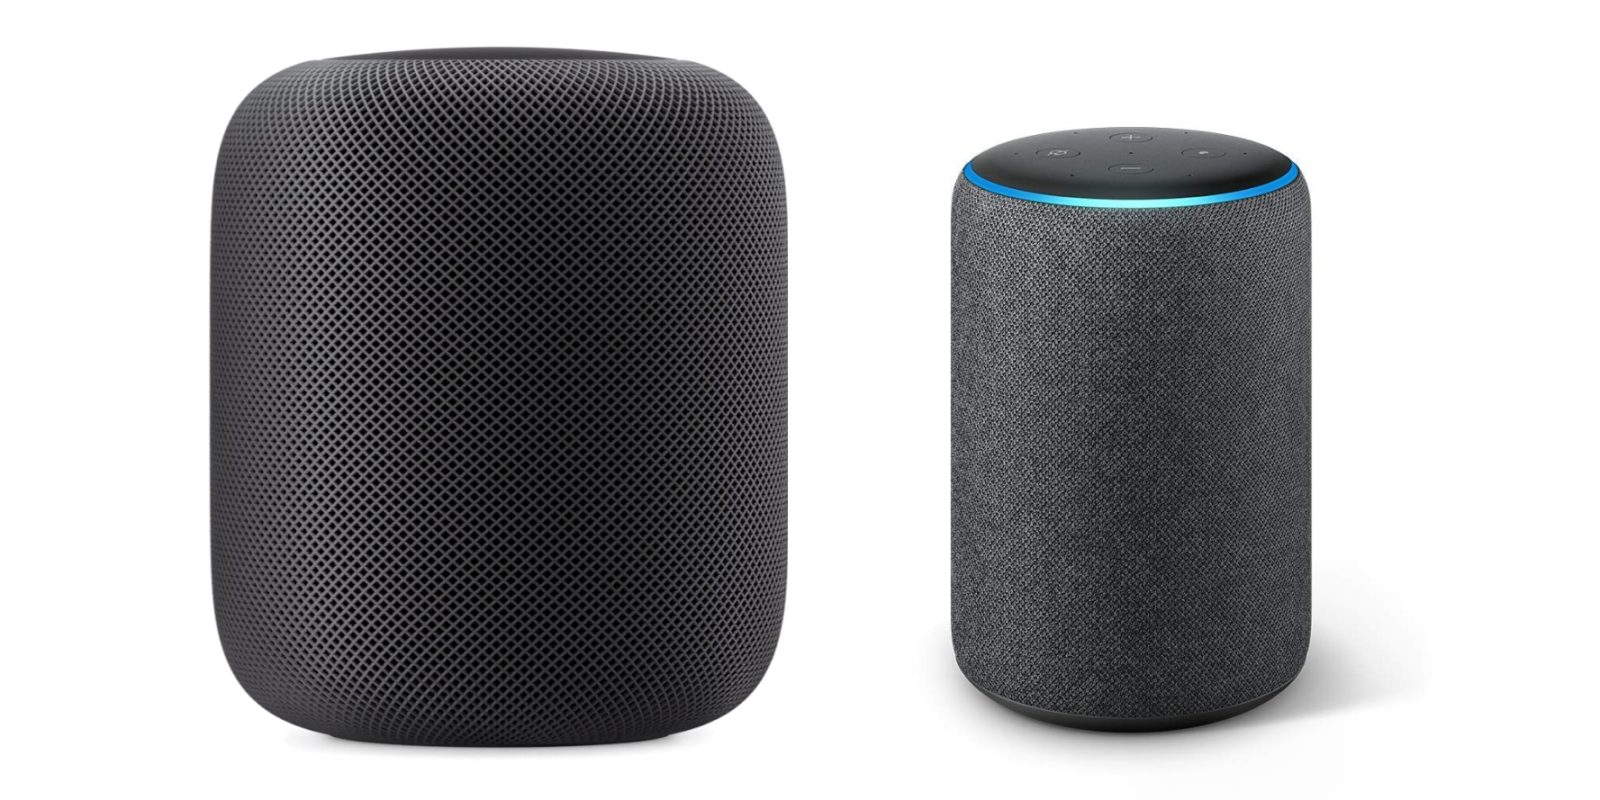 Report: Amazon working on new Echo speaker to directly compete against HomePod and Sonos